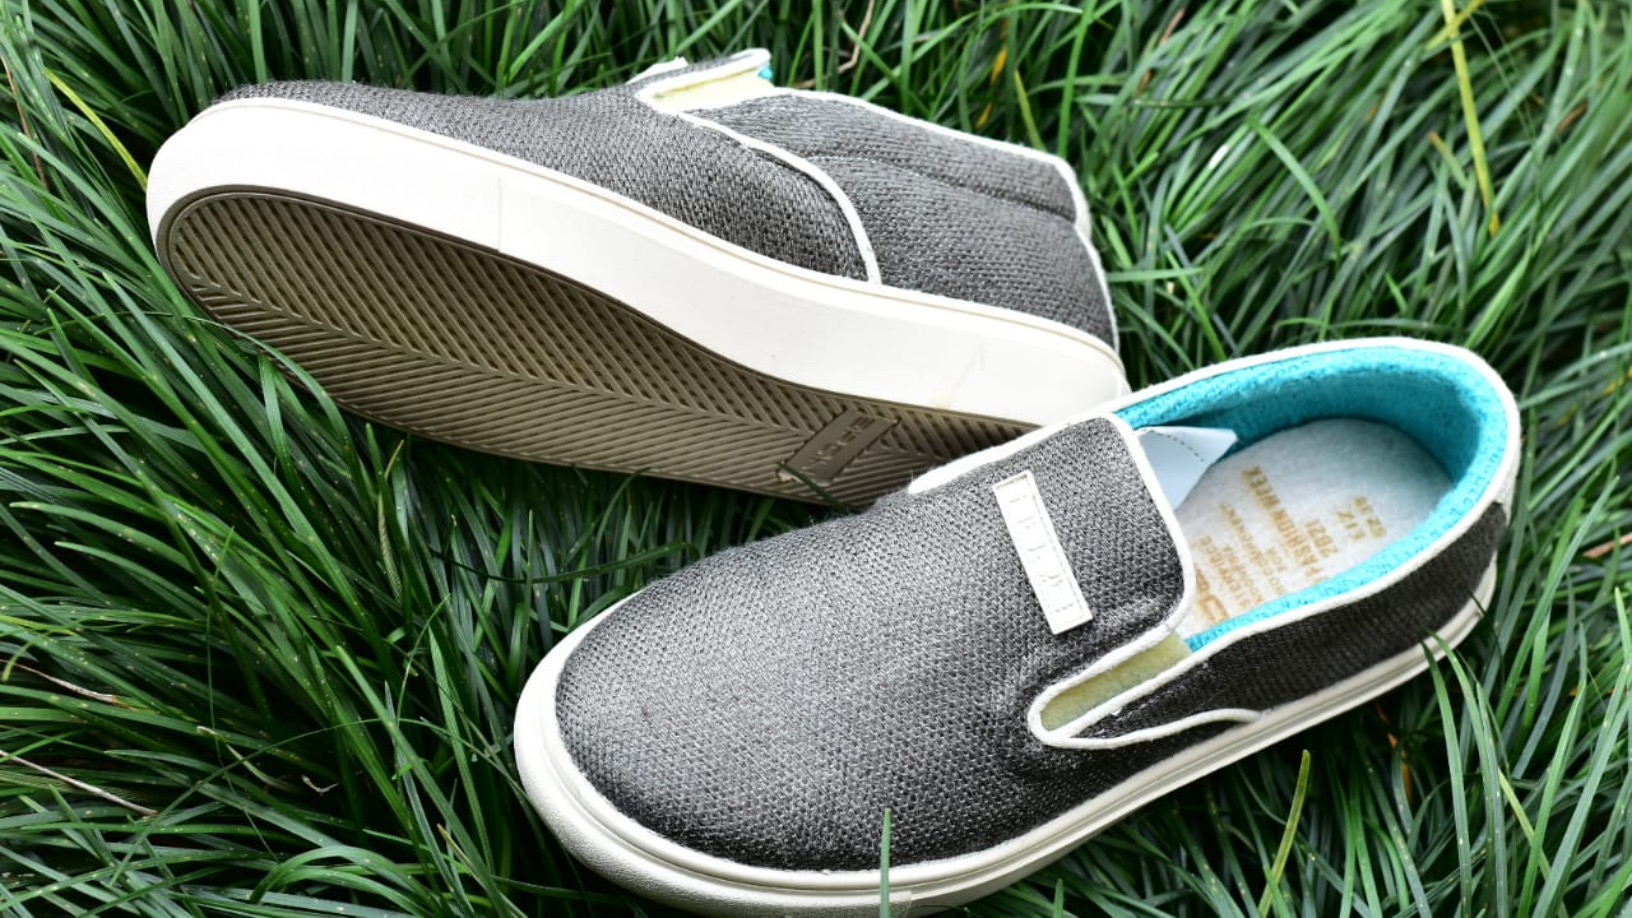 Node: Fighting deforestation with fashionable footwear from agricultural waste